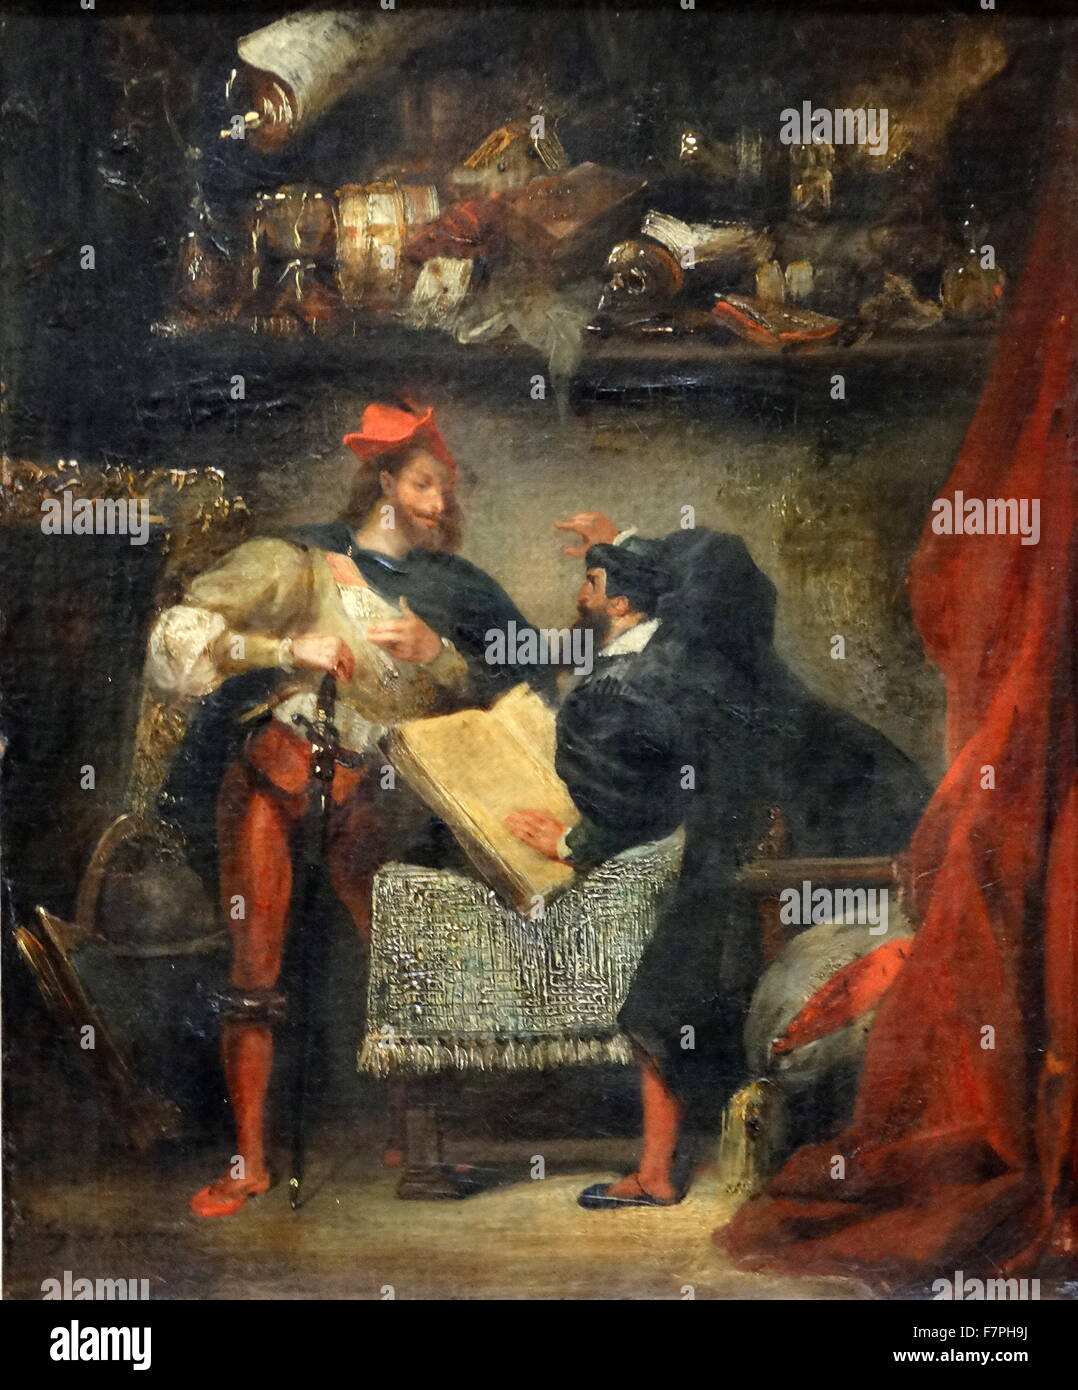 Painting titled 'Faust and Mephistopheles' by Eugène Delacroix (1798-1863) French Romantic artist. - Stock Image